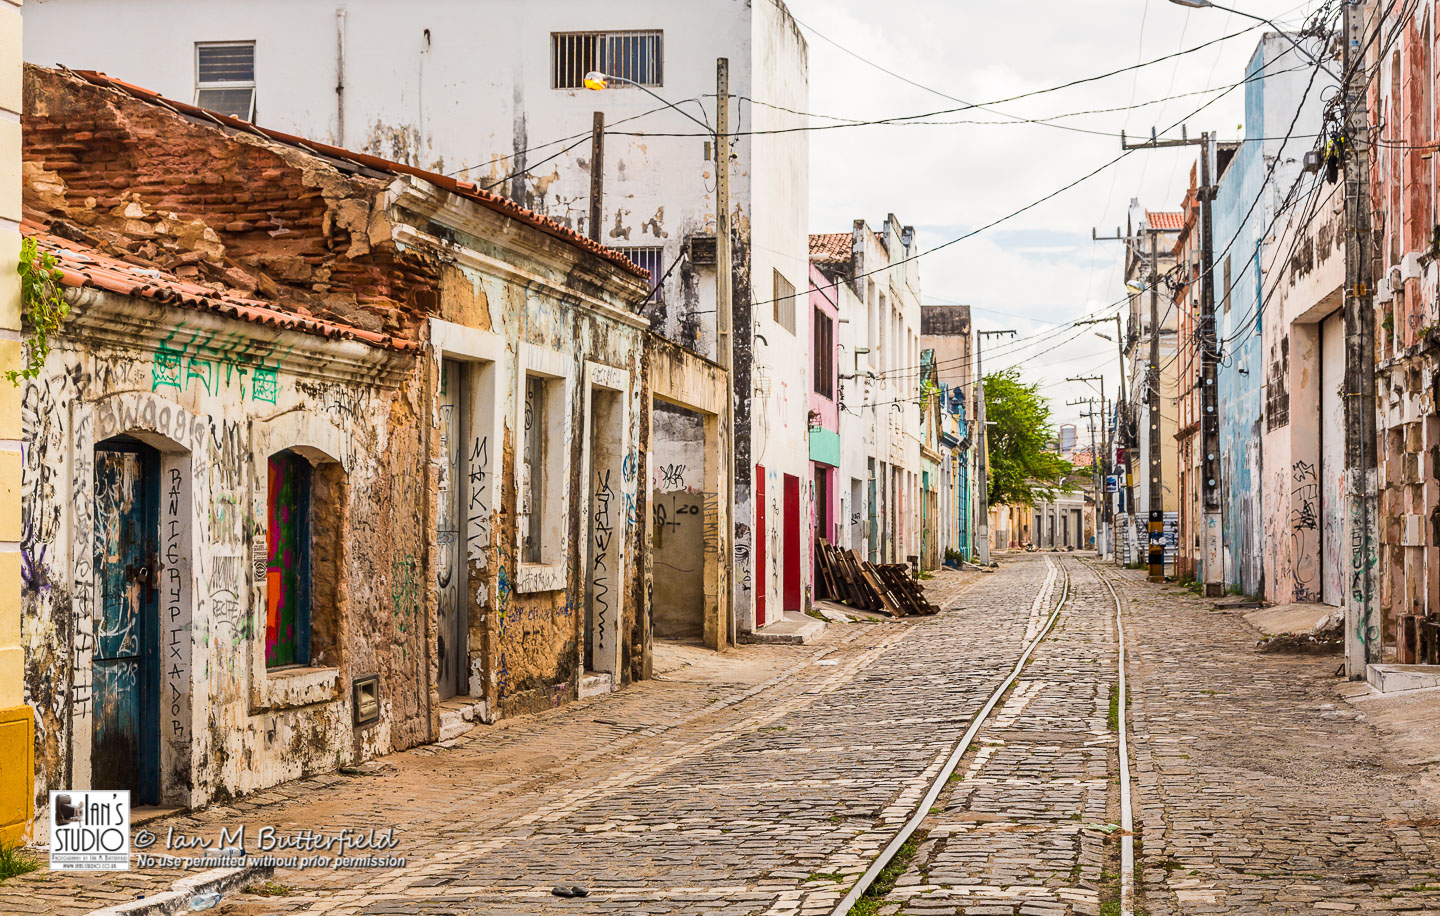 ACADEMY BITE: Lessons from the South America Cruise #18 – The back streets of Natal